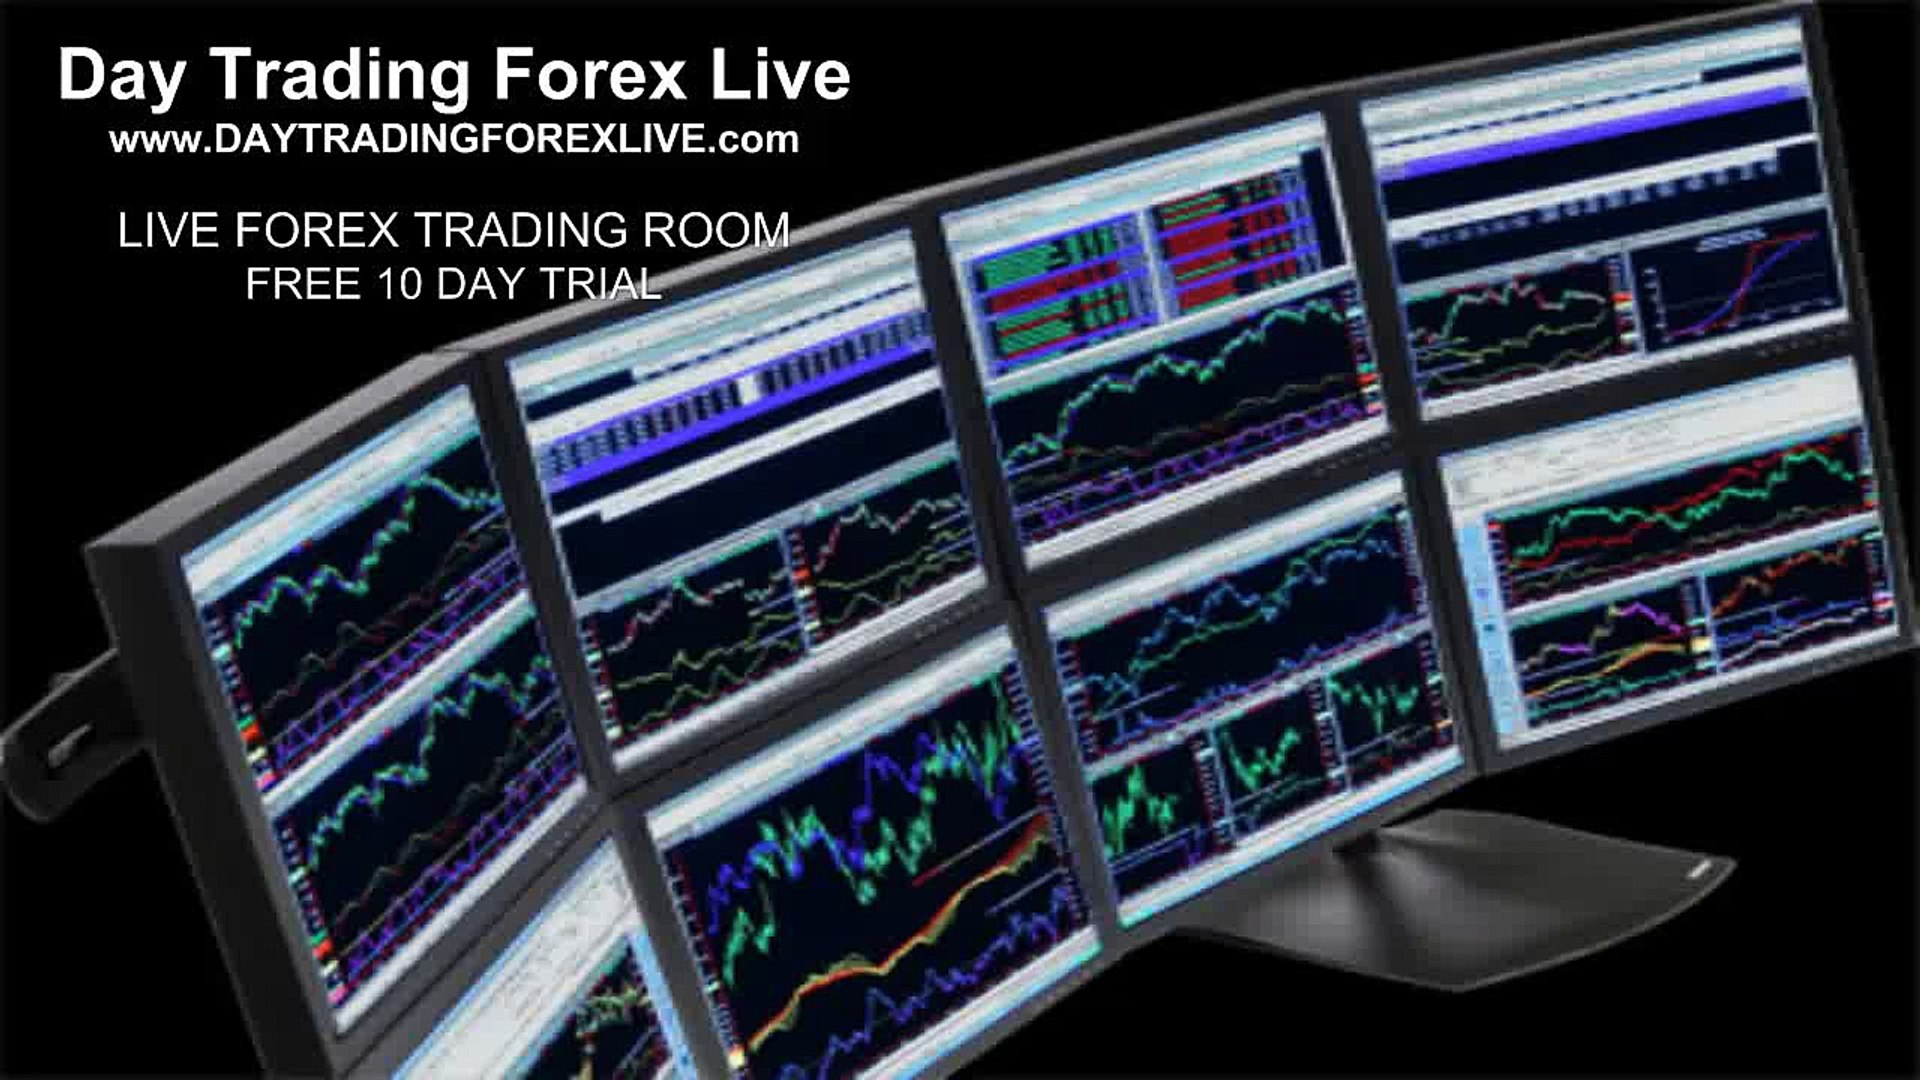 Day Trading Forex Live Live Trading Room Intro Dailymotion Video